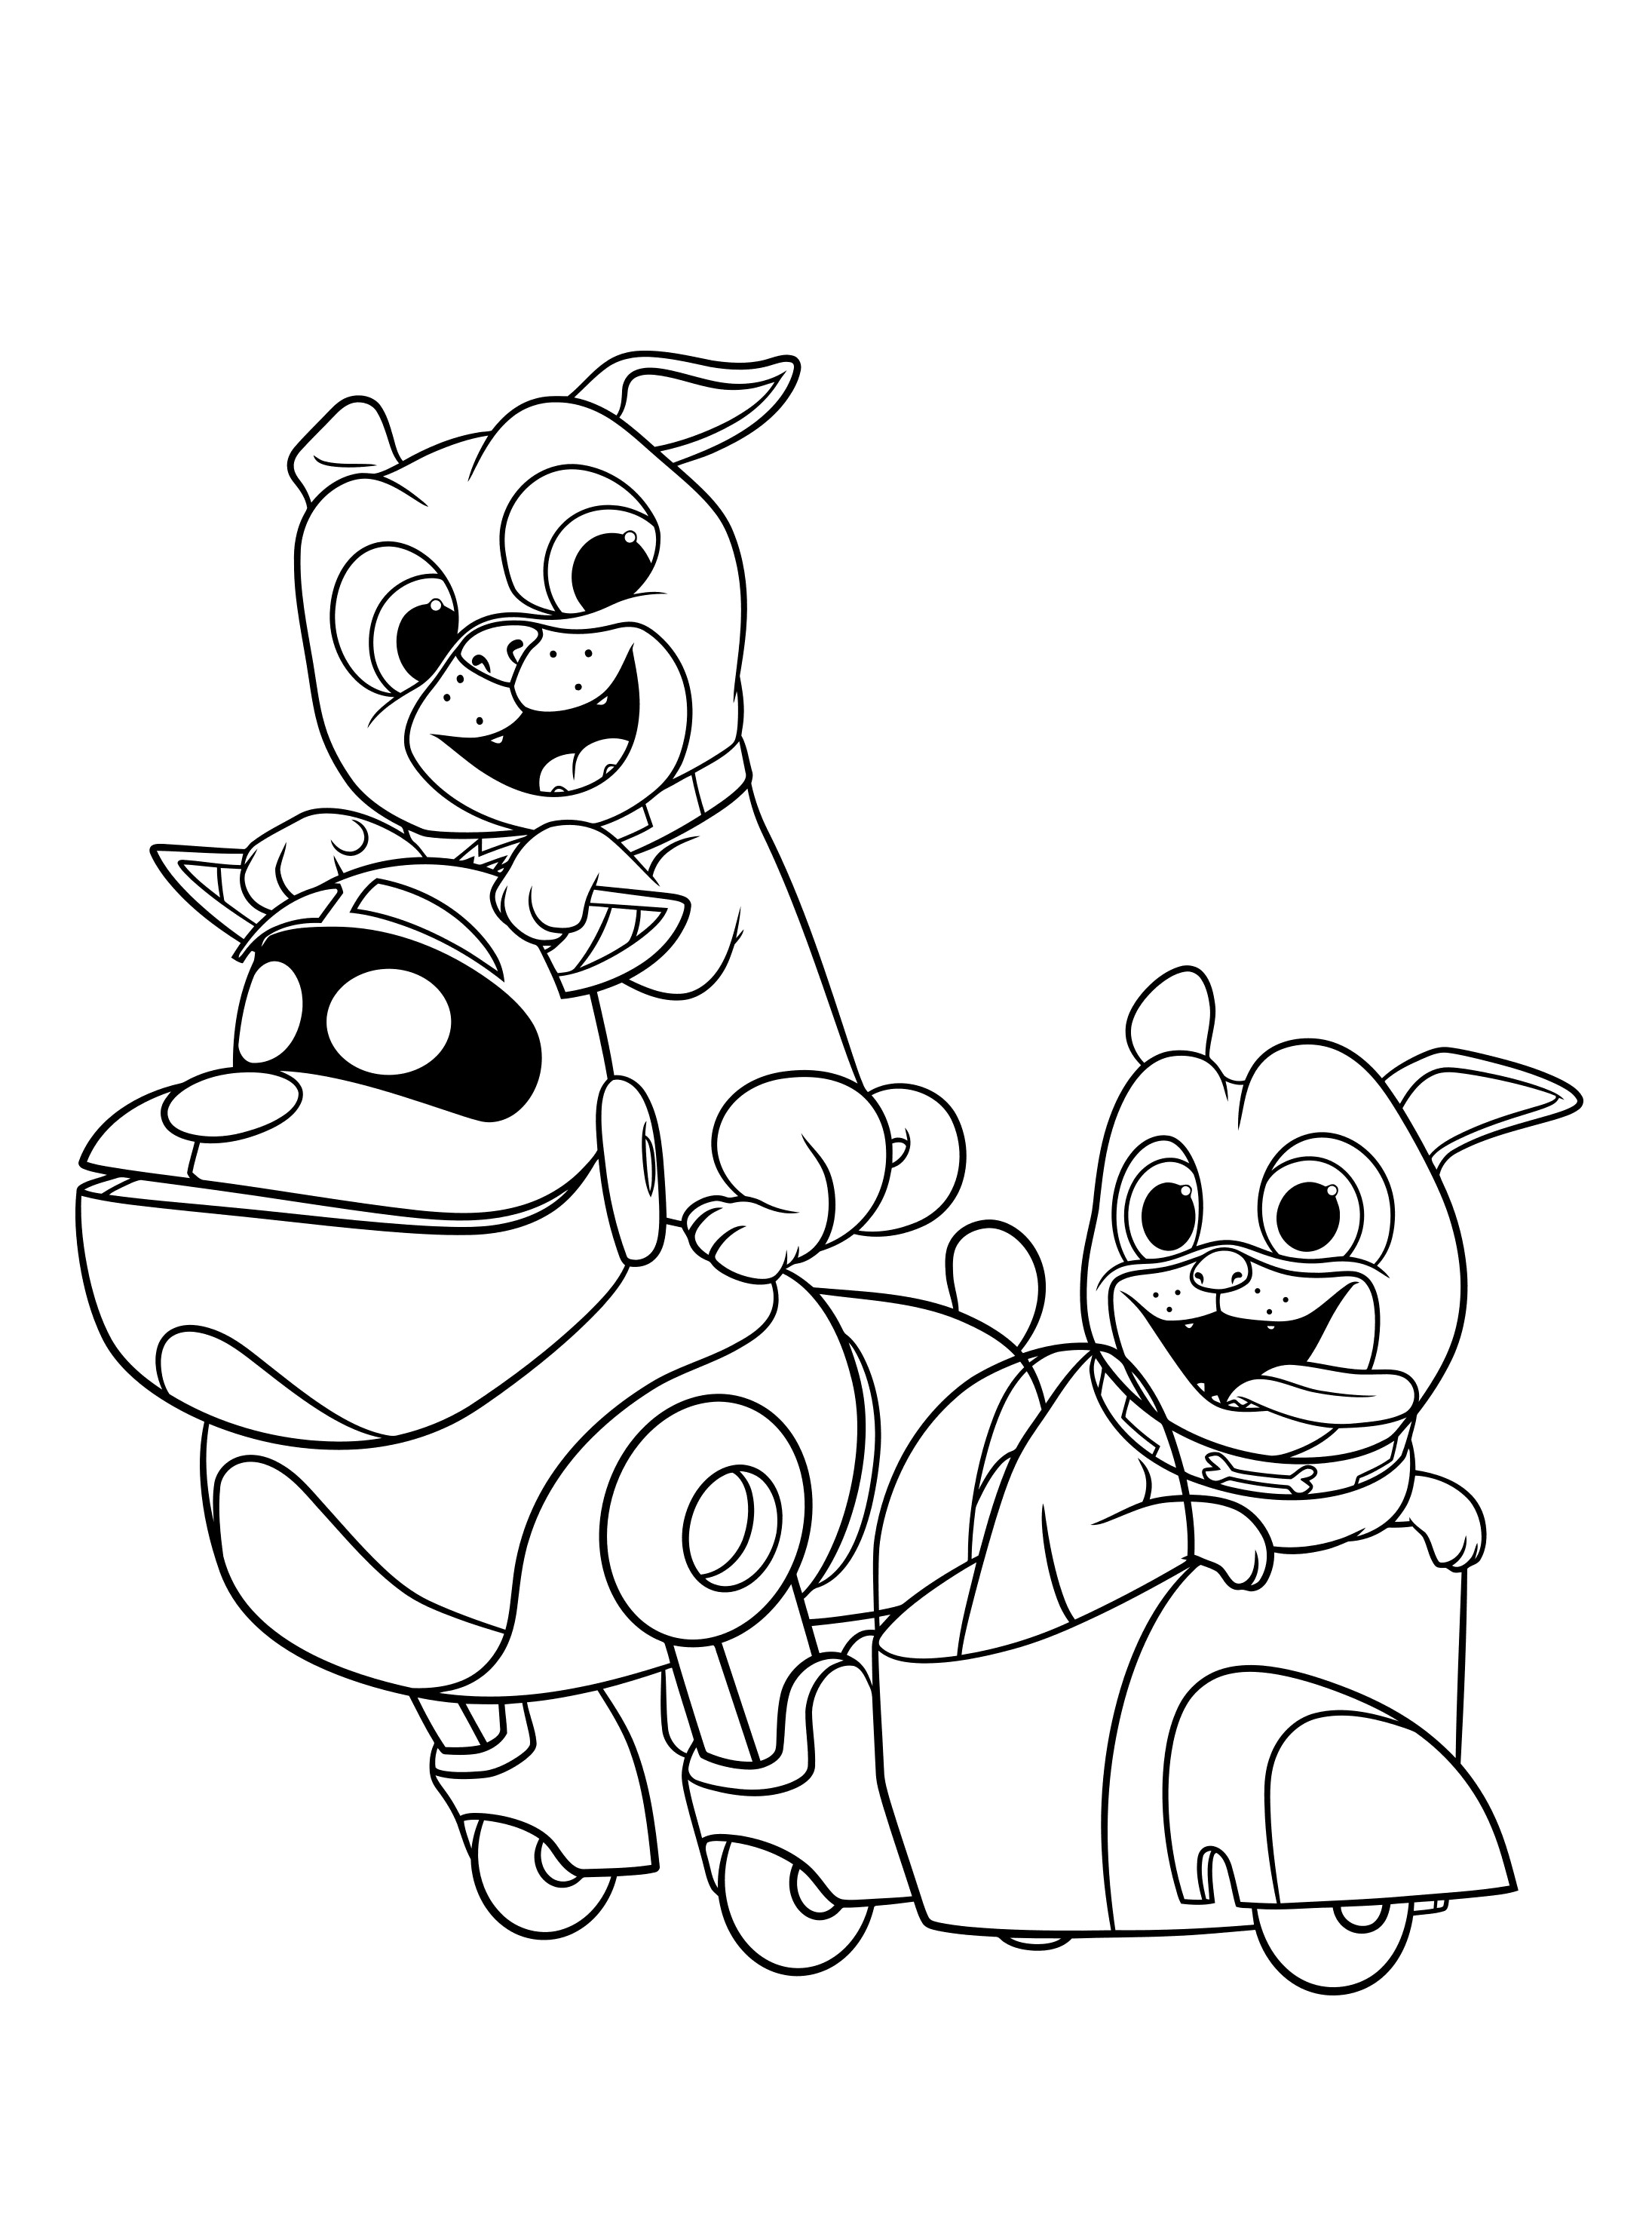 free printable coloring pages of dogs cute dog coloring pages to download and print for free coloring pages of free dogs printable